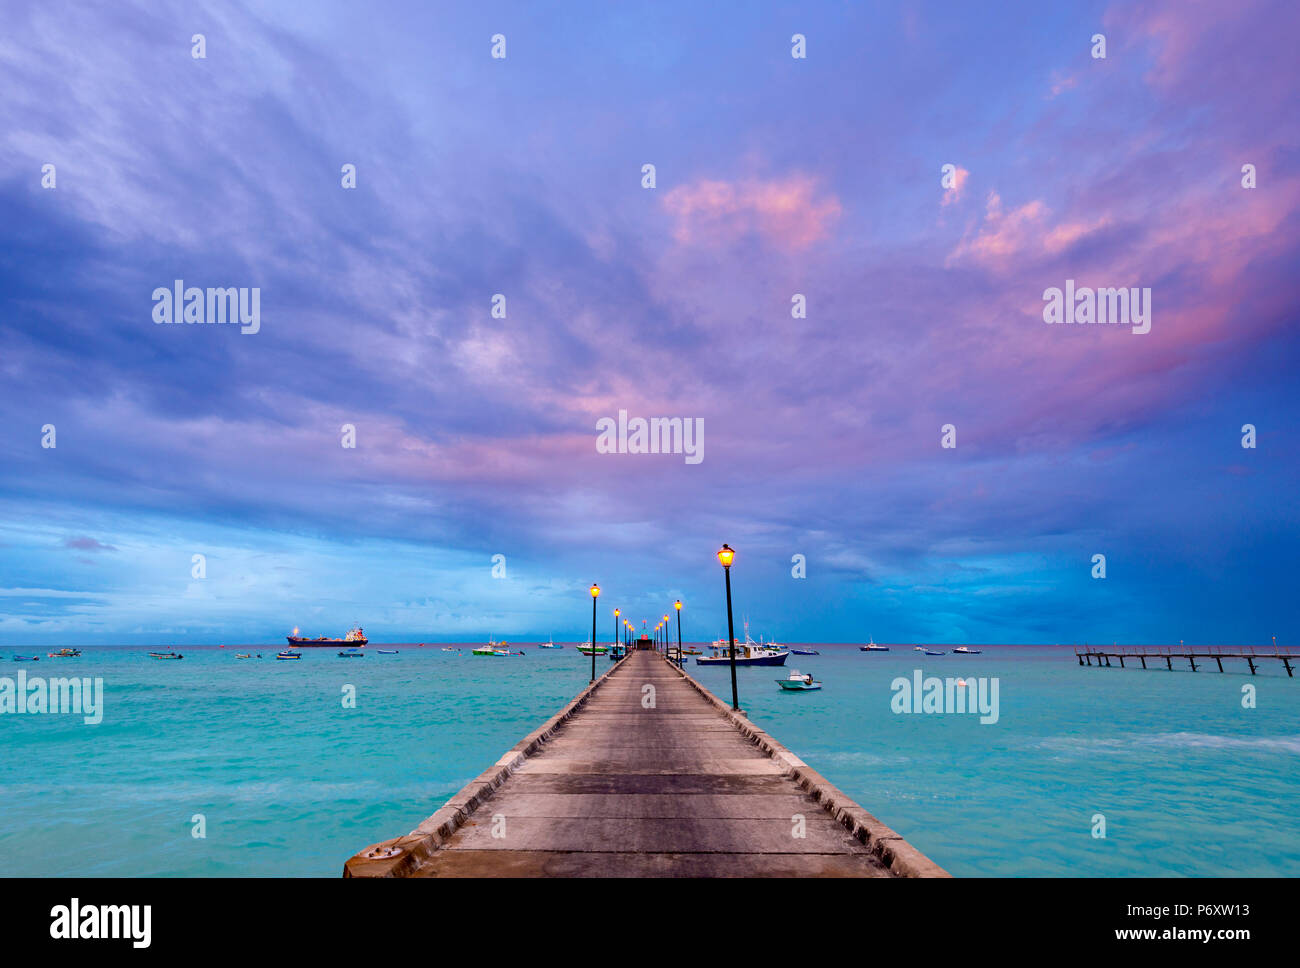 Caribbean, Barbados, Oistins, Oistins Beach, Fishing Boat Jetty - Stock Image